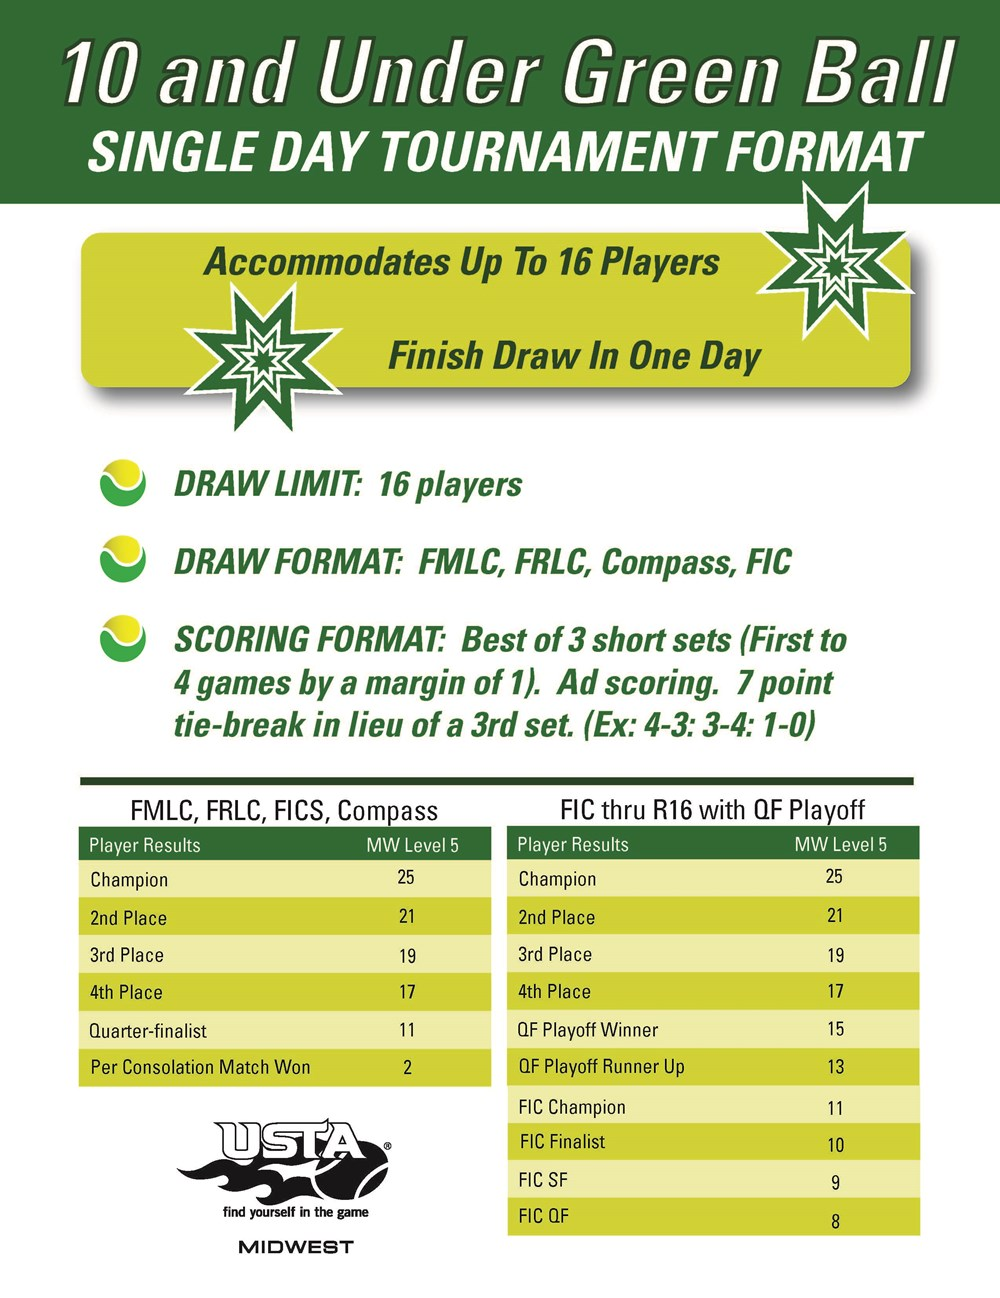 Single_Day_Green_Ball_Format_Flyer_2016_12.16.15_JK